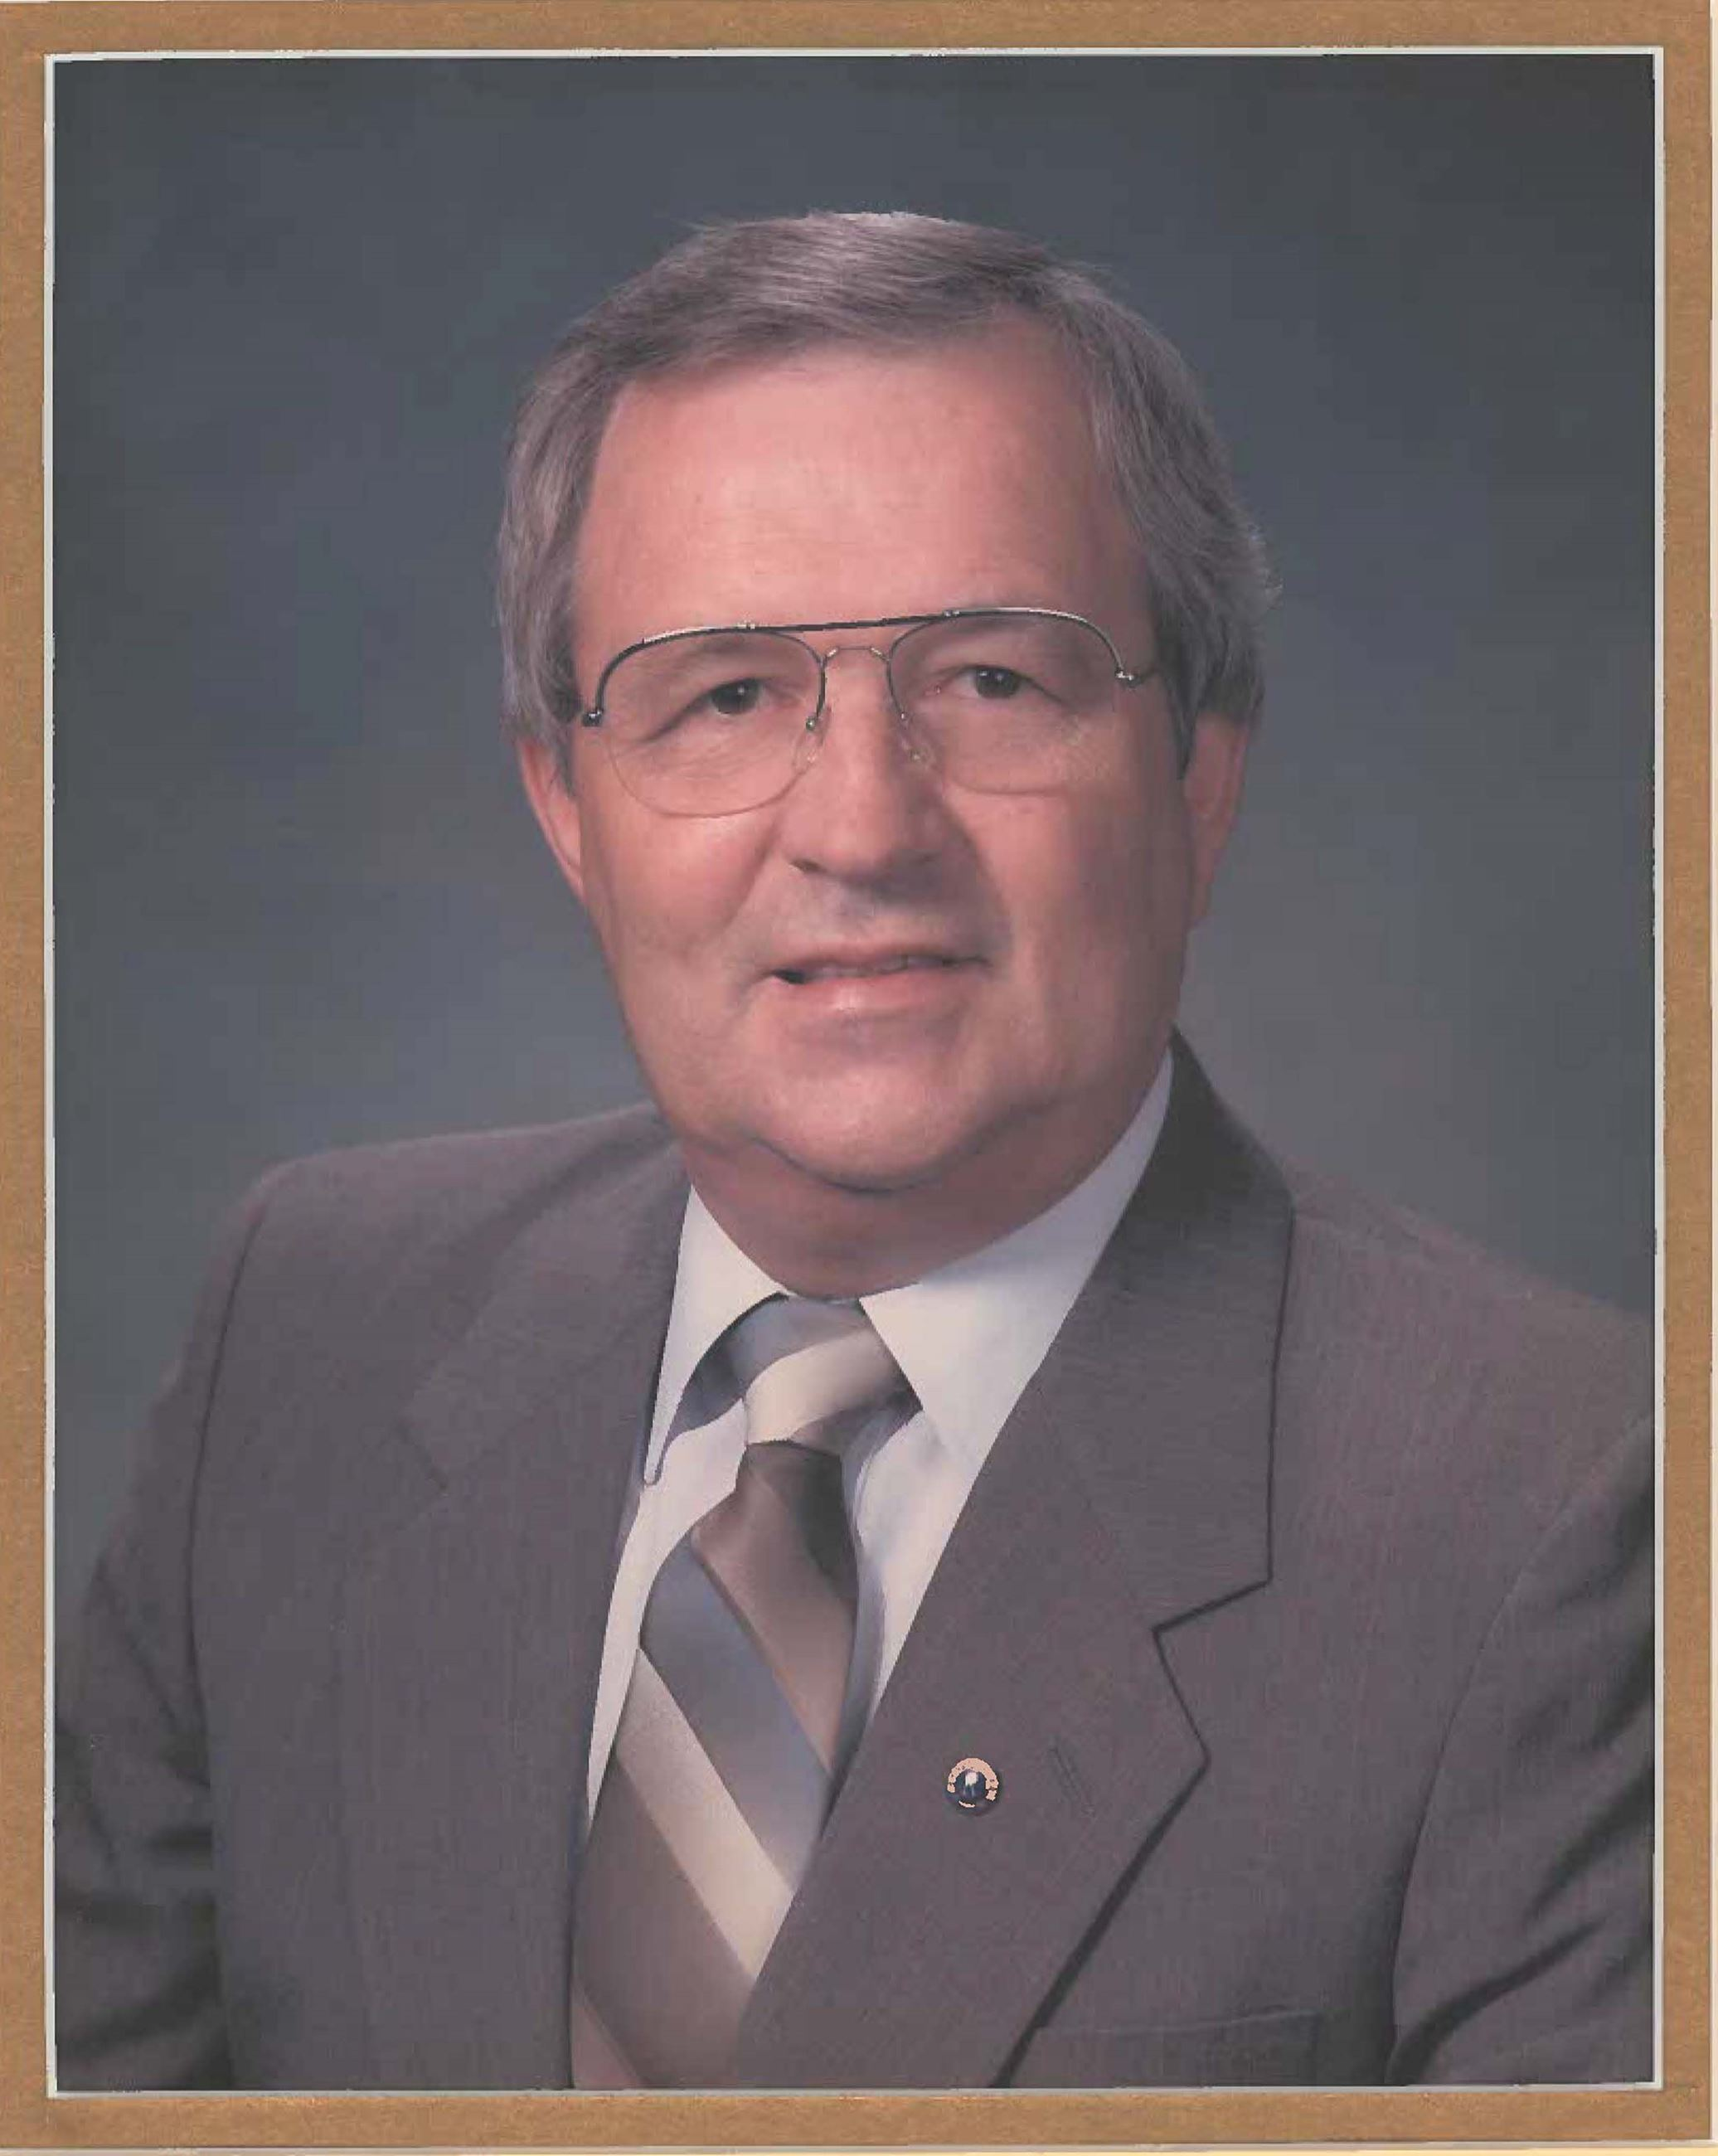 Mayor Joe Young